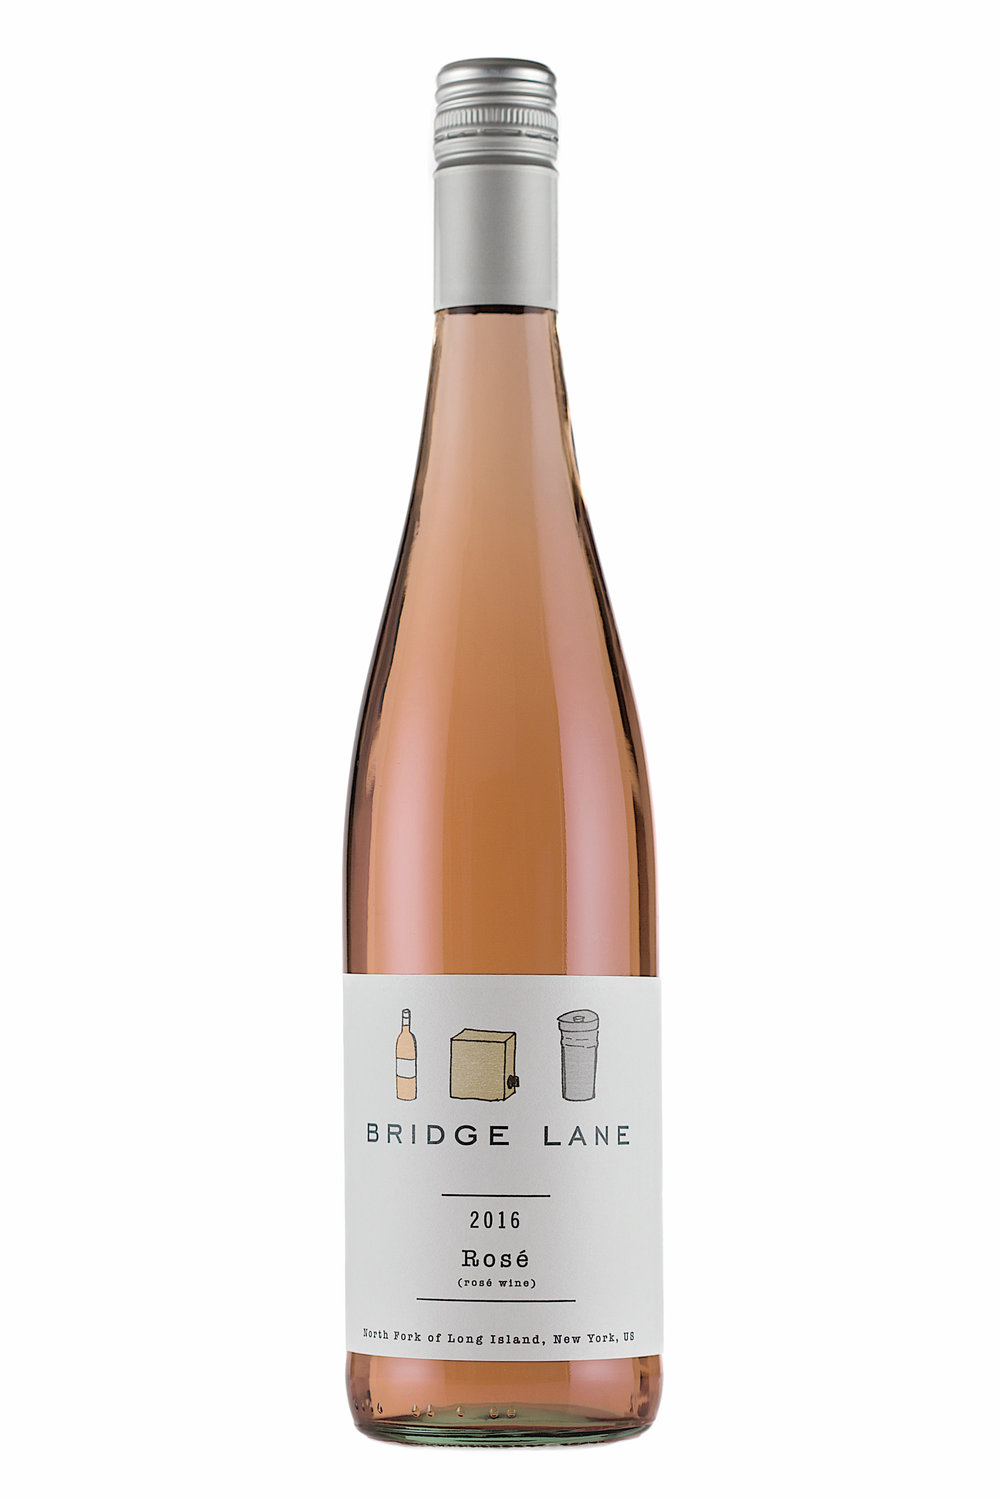 2016 Bridge Lane Rosé.jpg